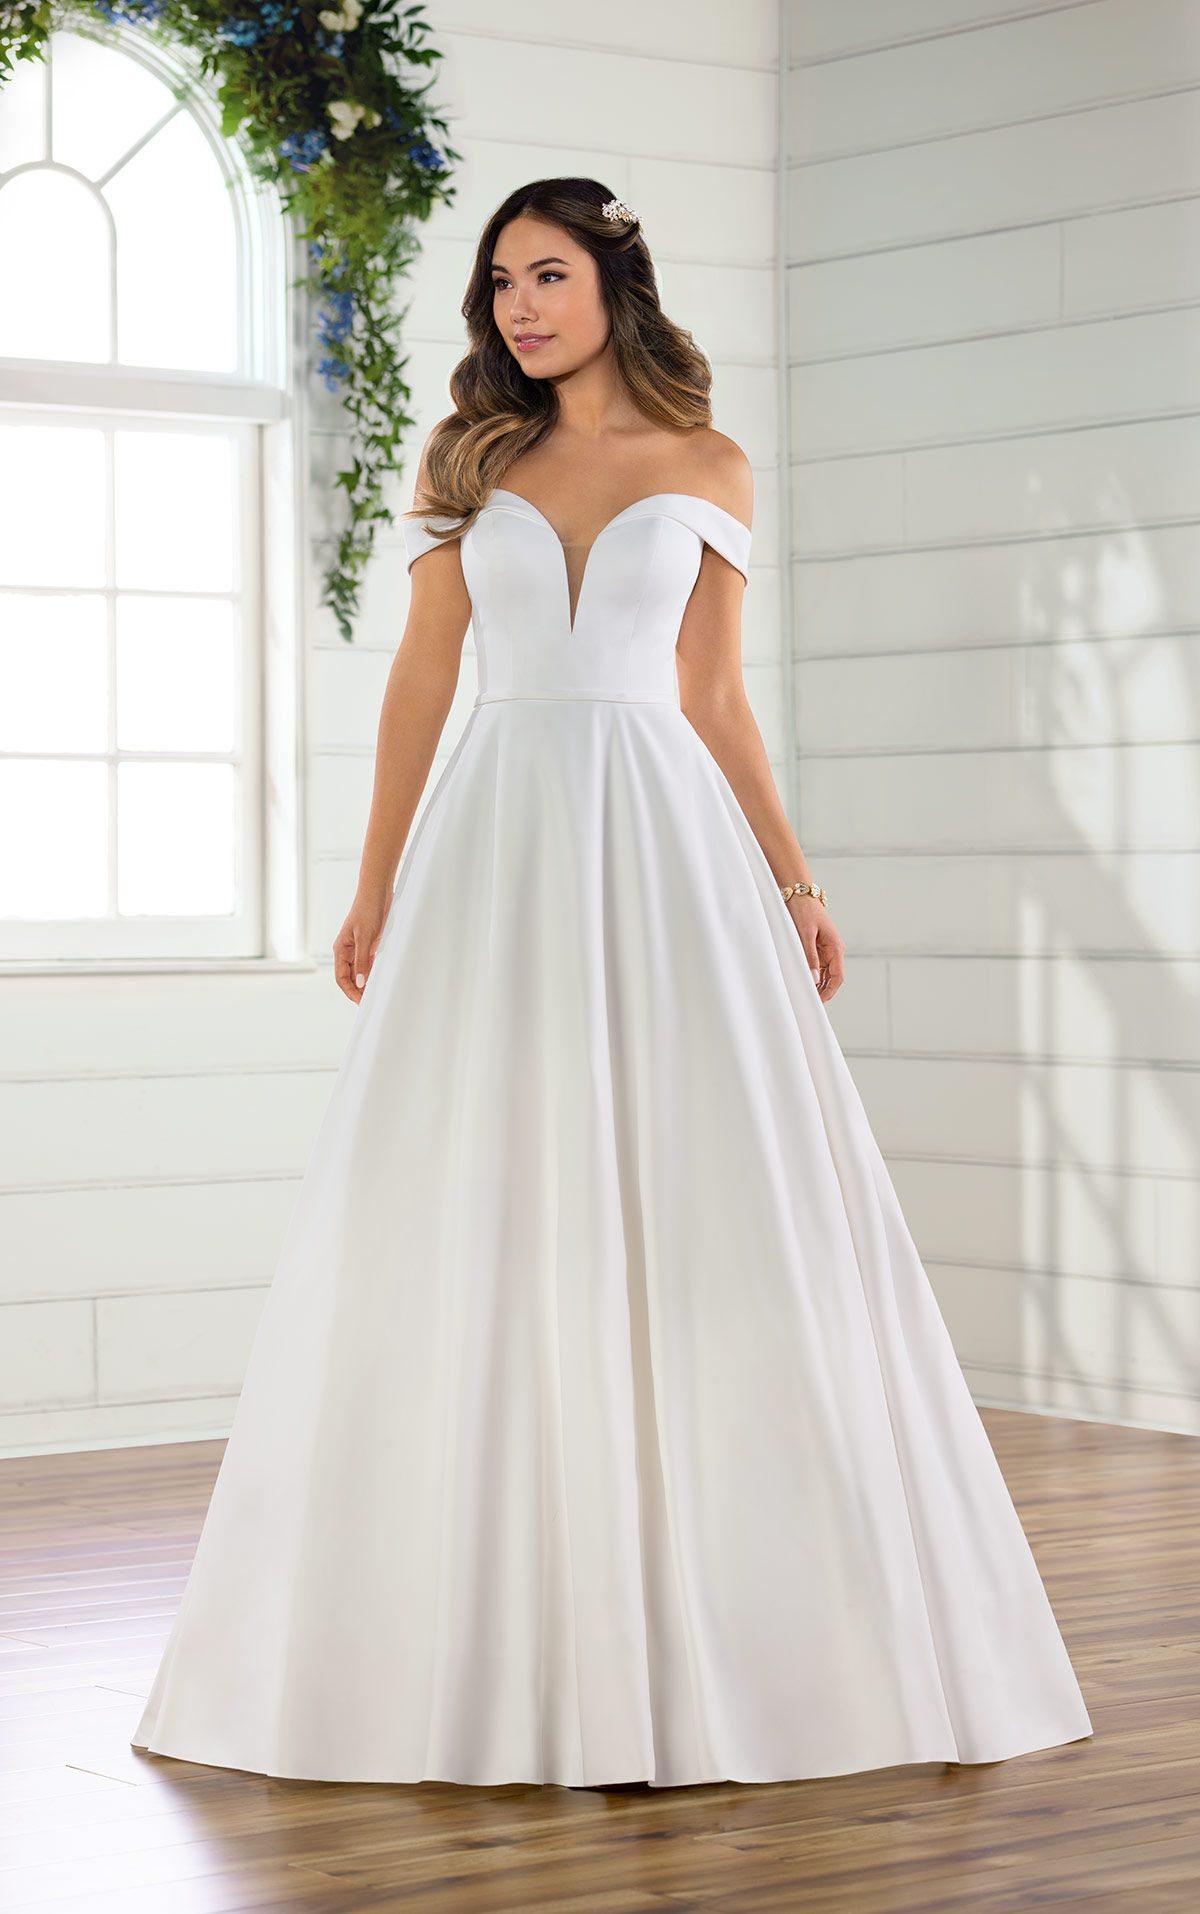 Essense Of Australia D2761 This Classic Satin Ballgown Features A Plunging Sweet Essense Of Australia Wedding Dresses Wedding Dresses Off Shoulder Ball Gown